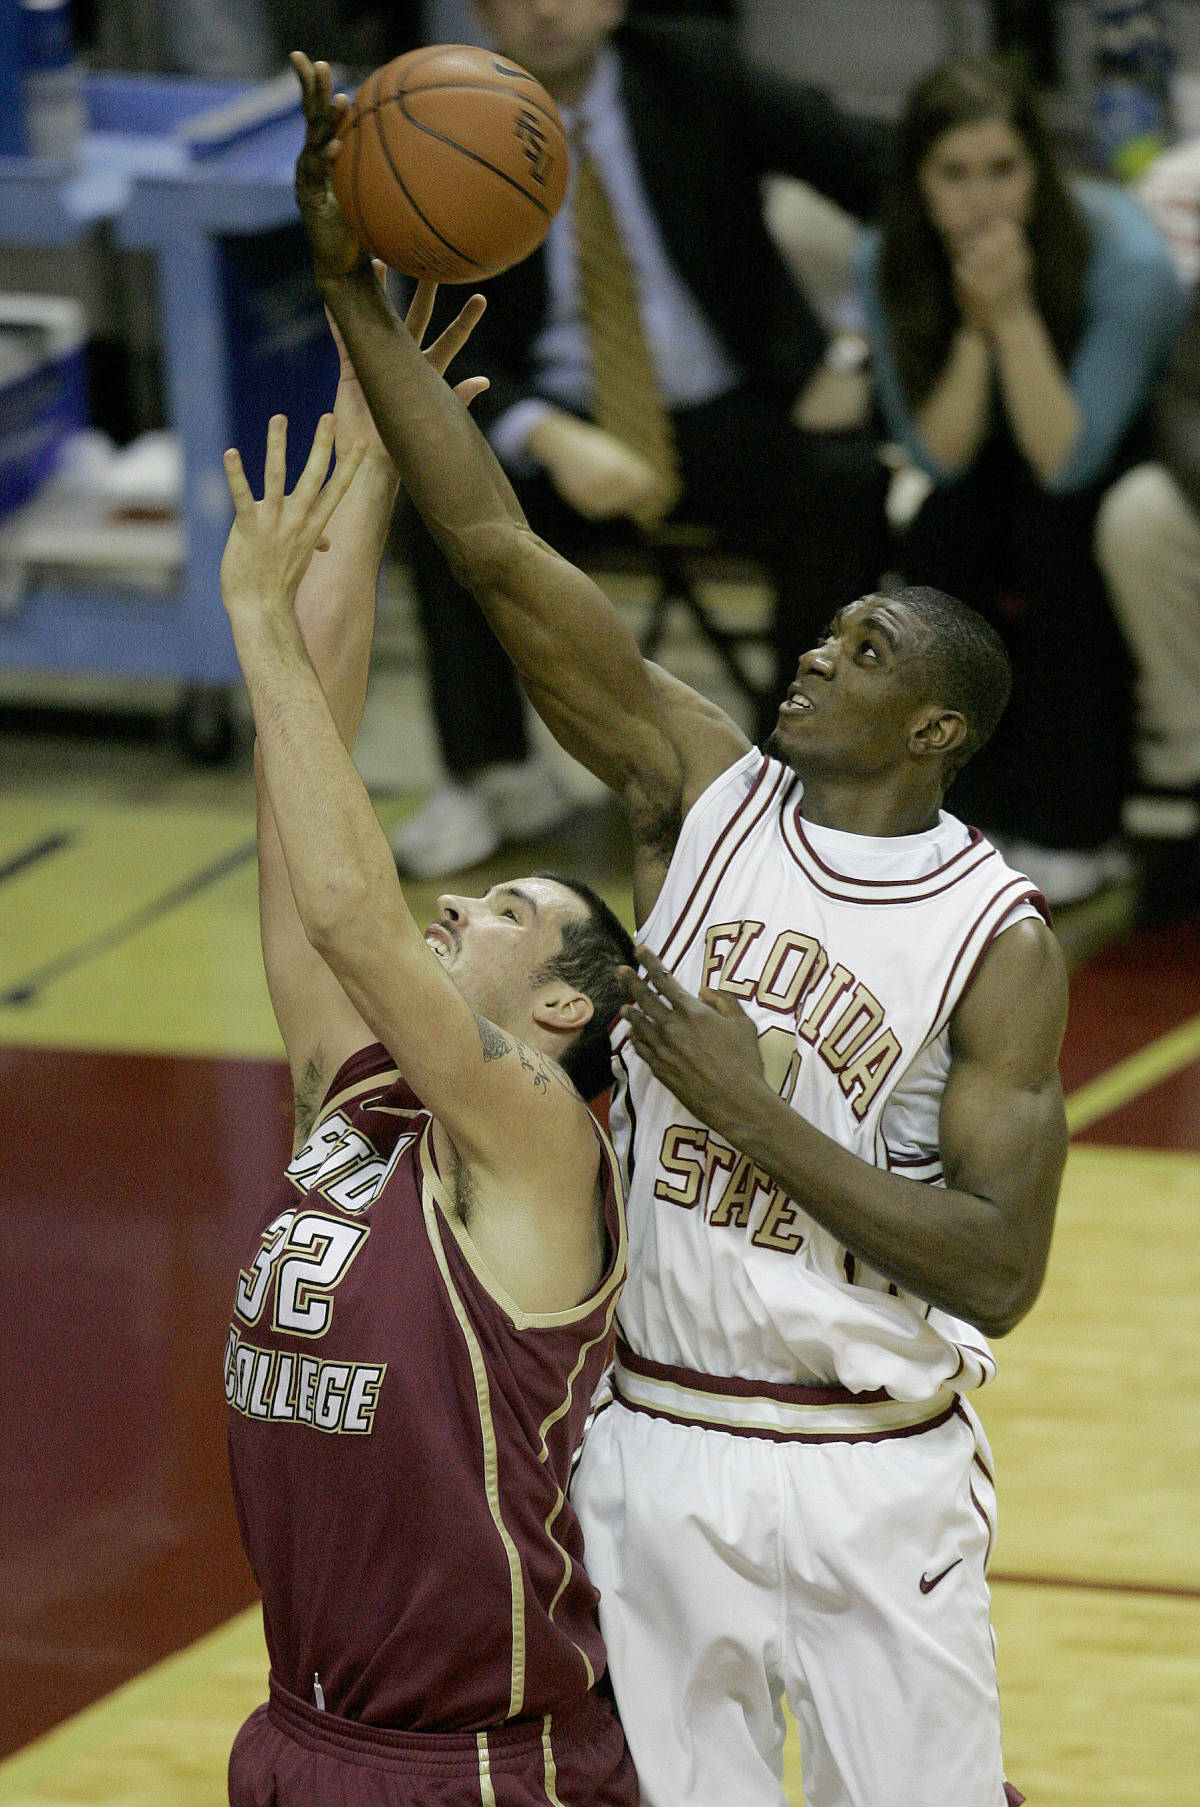 Florida State's Uche Echefu, right, goes over the back of Boston College's John Oates for a first-half rebound, Sunday, Feb. 11, 2007, in Tallahassee, Fla.(AP Photo/Phil Coale)